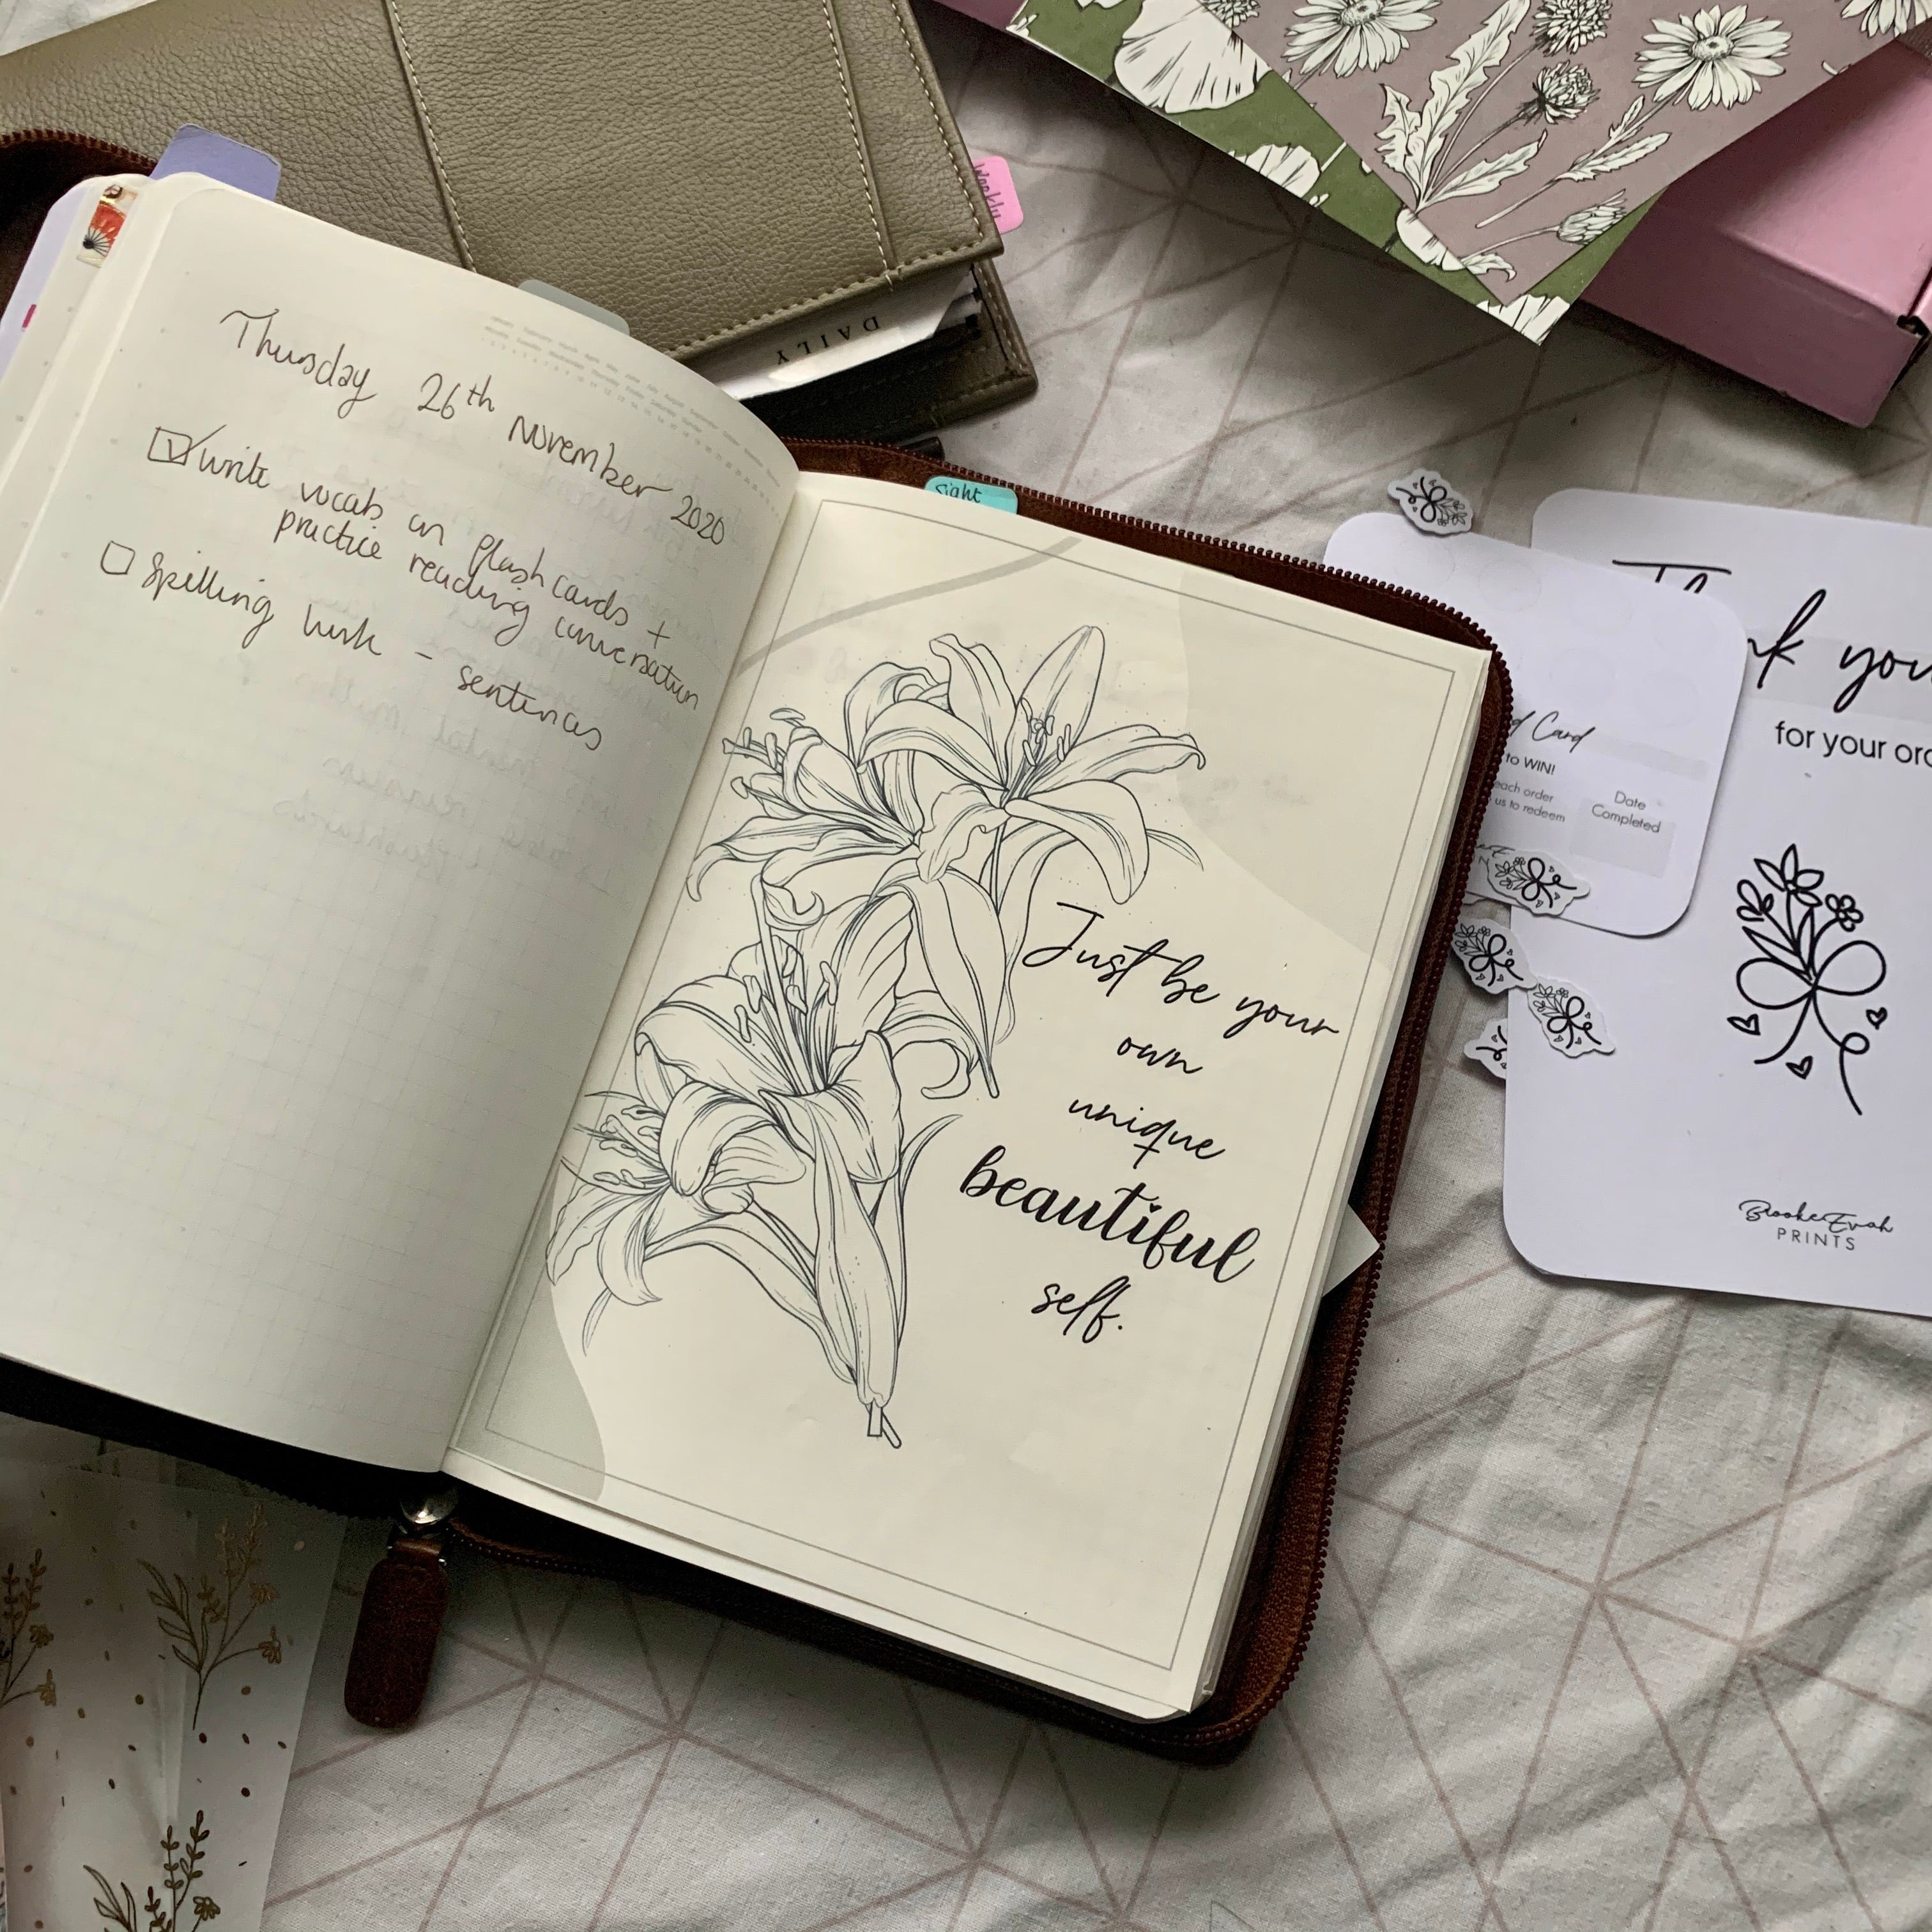 Printed Tomoe River Paper Planner Dashboards - Just be your own unique beautiful self